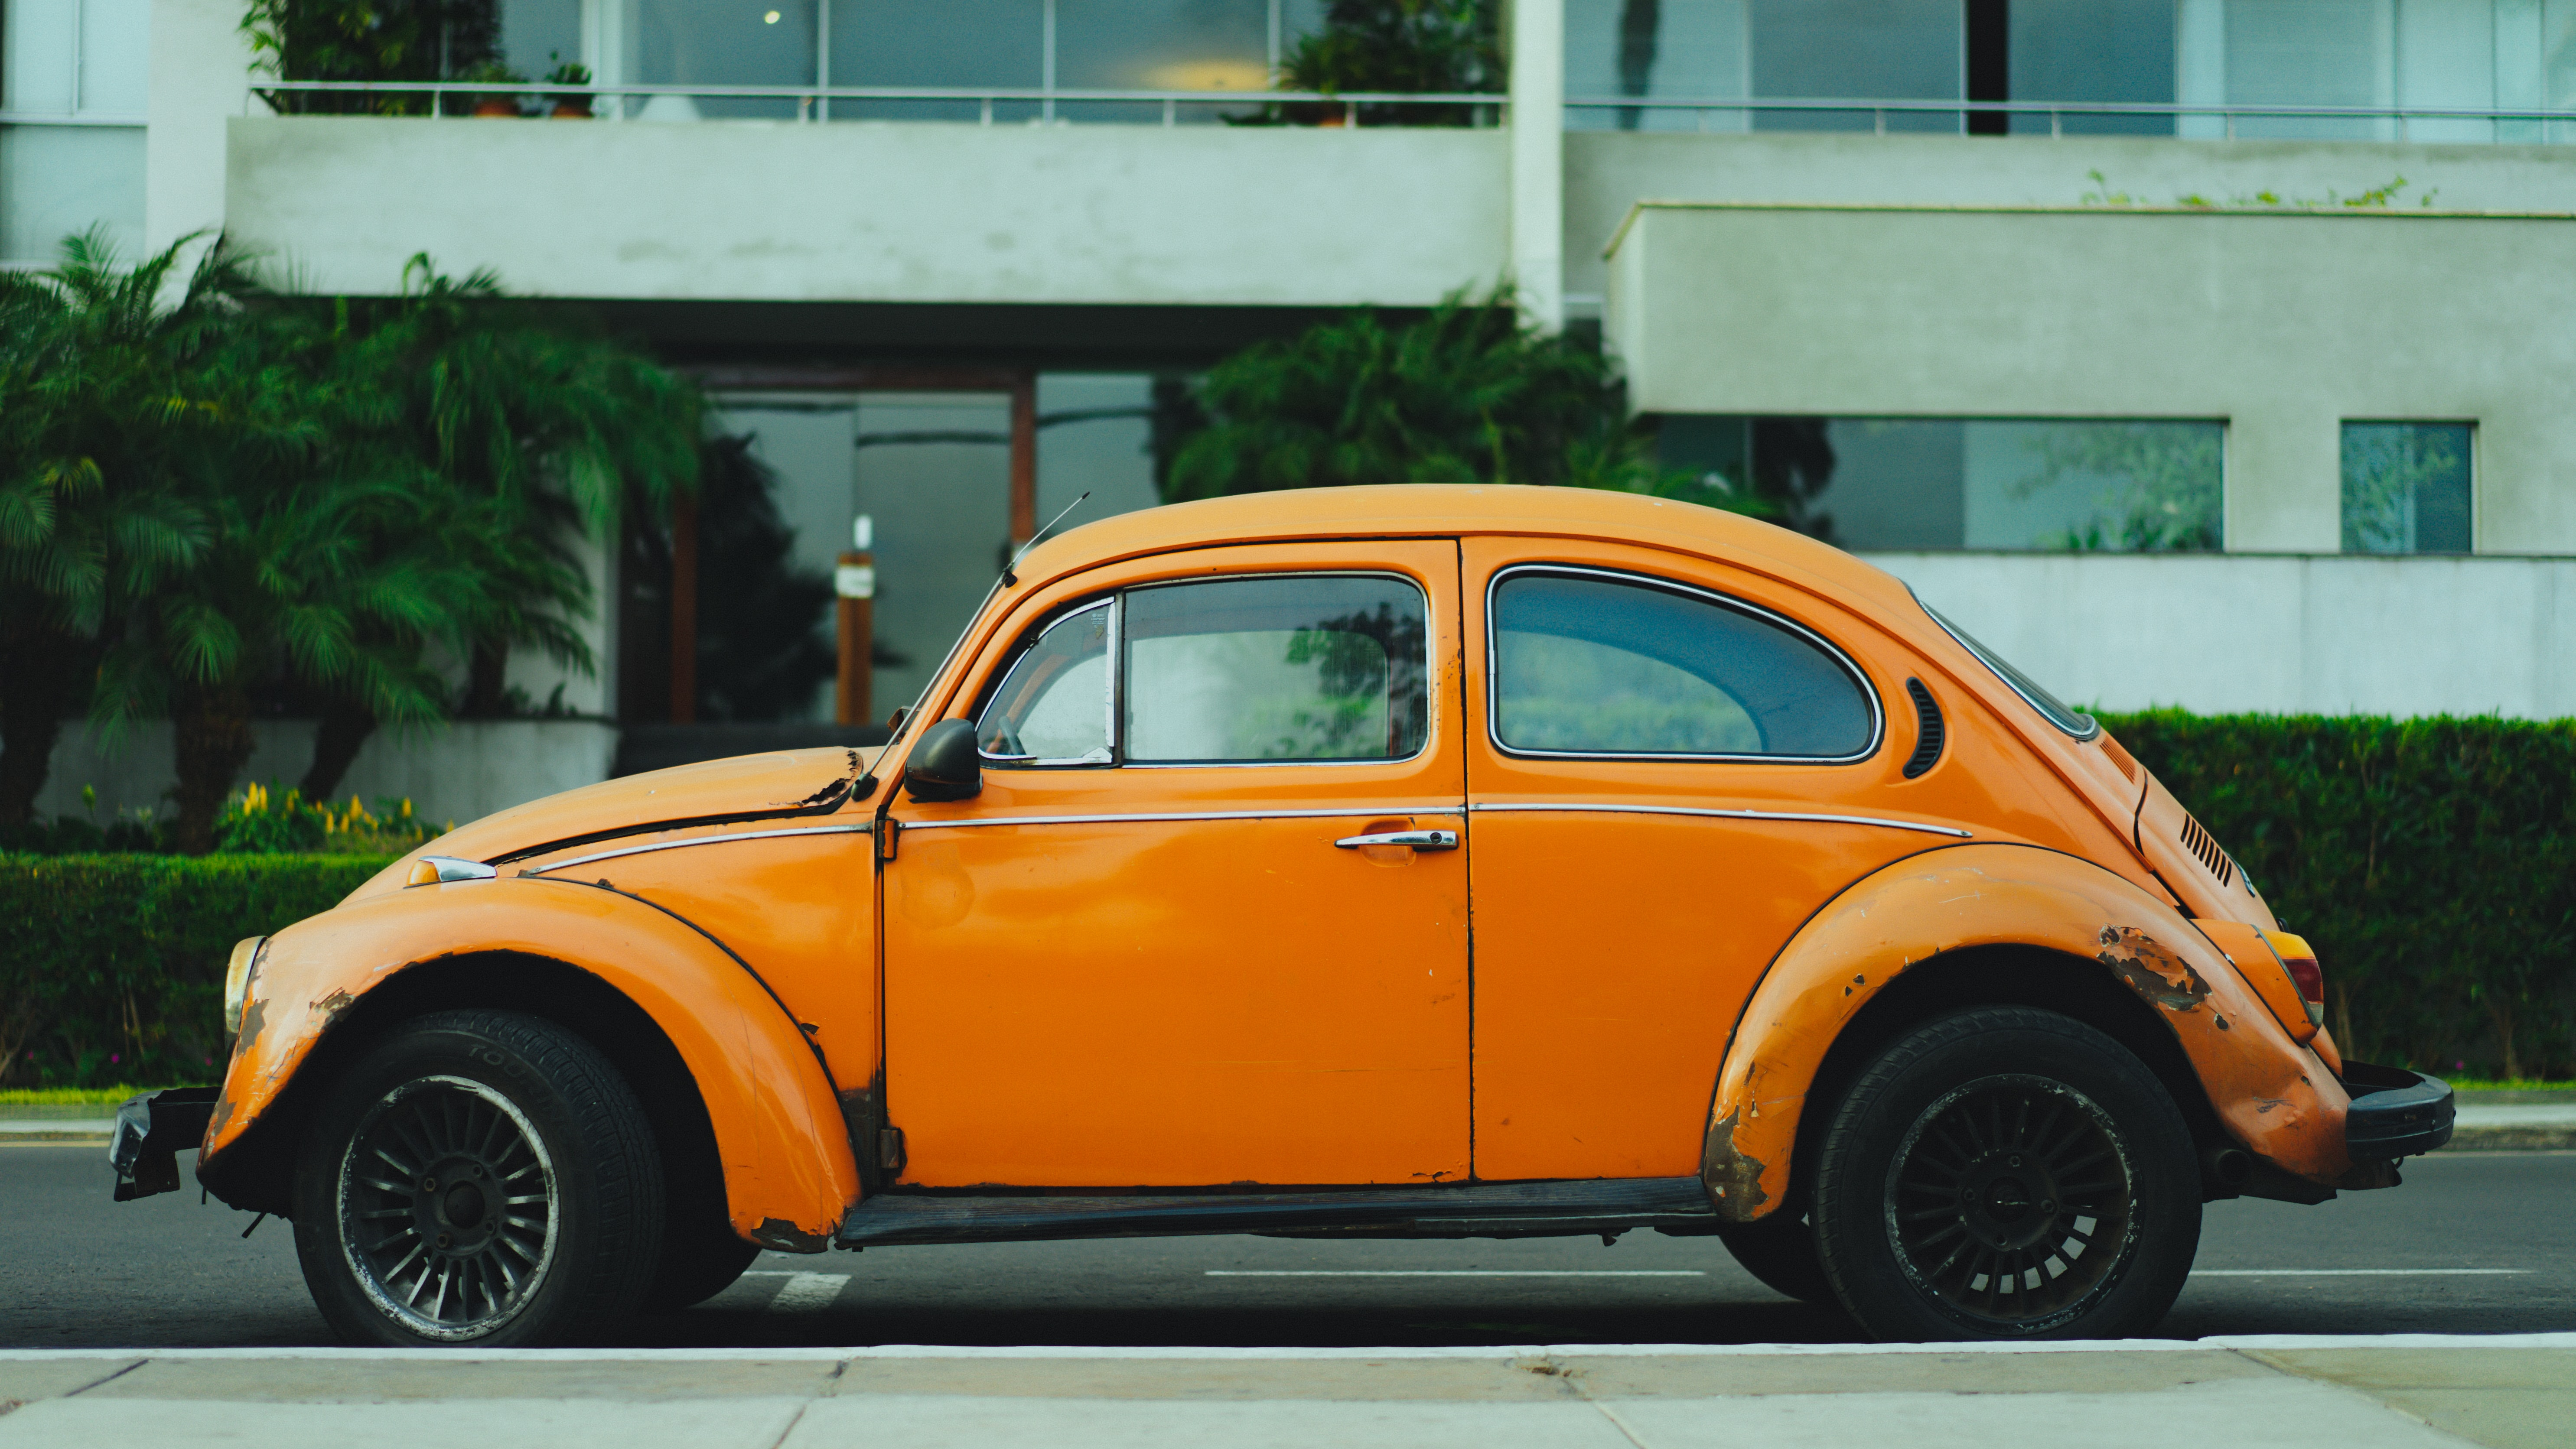 Rusted old vintage orange Volkswagen beetle parked in front of apartment complex